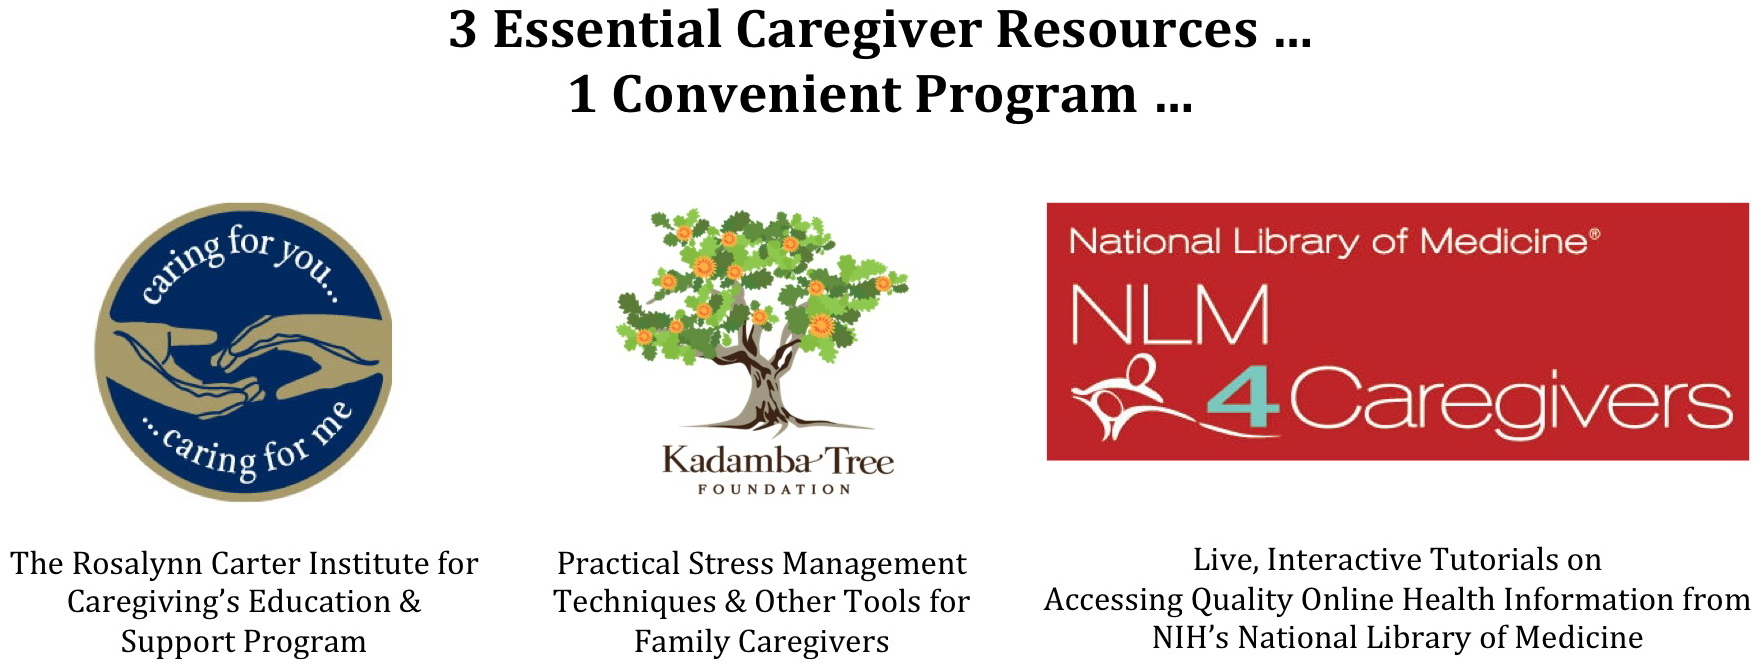 3 Essential Caregiving Resources